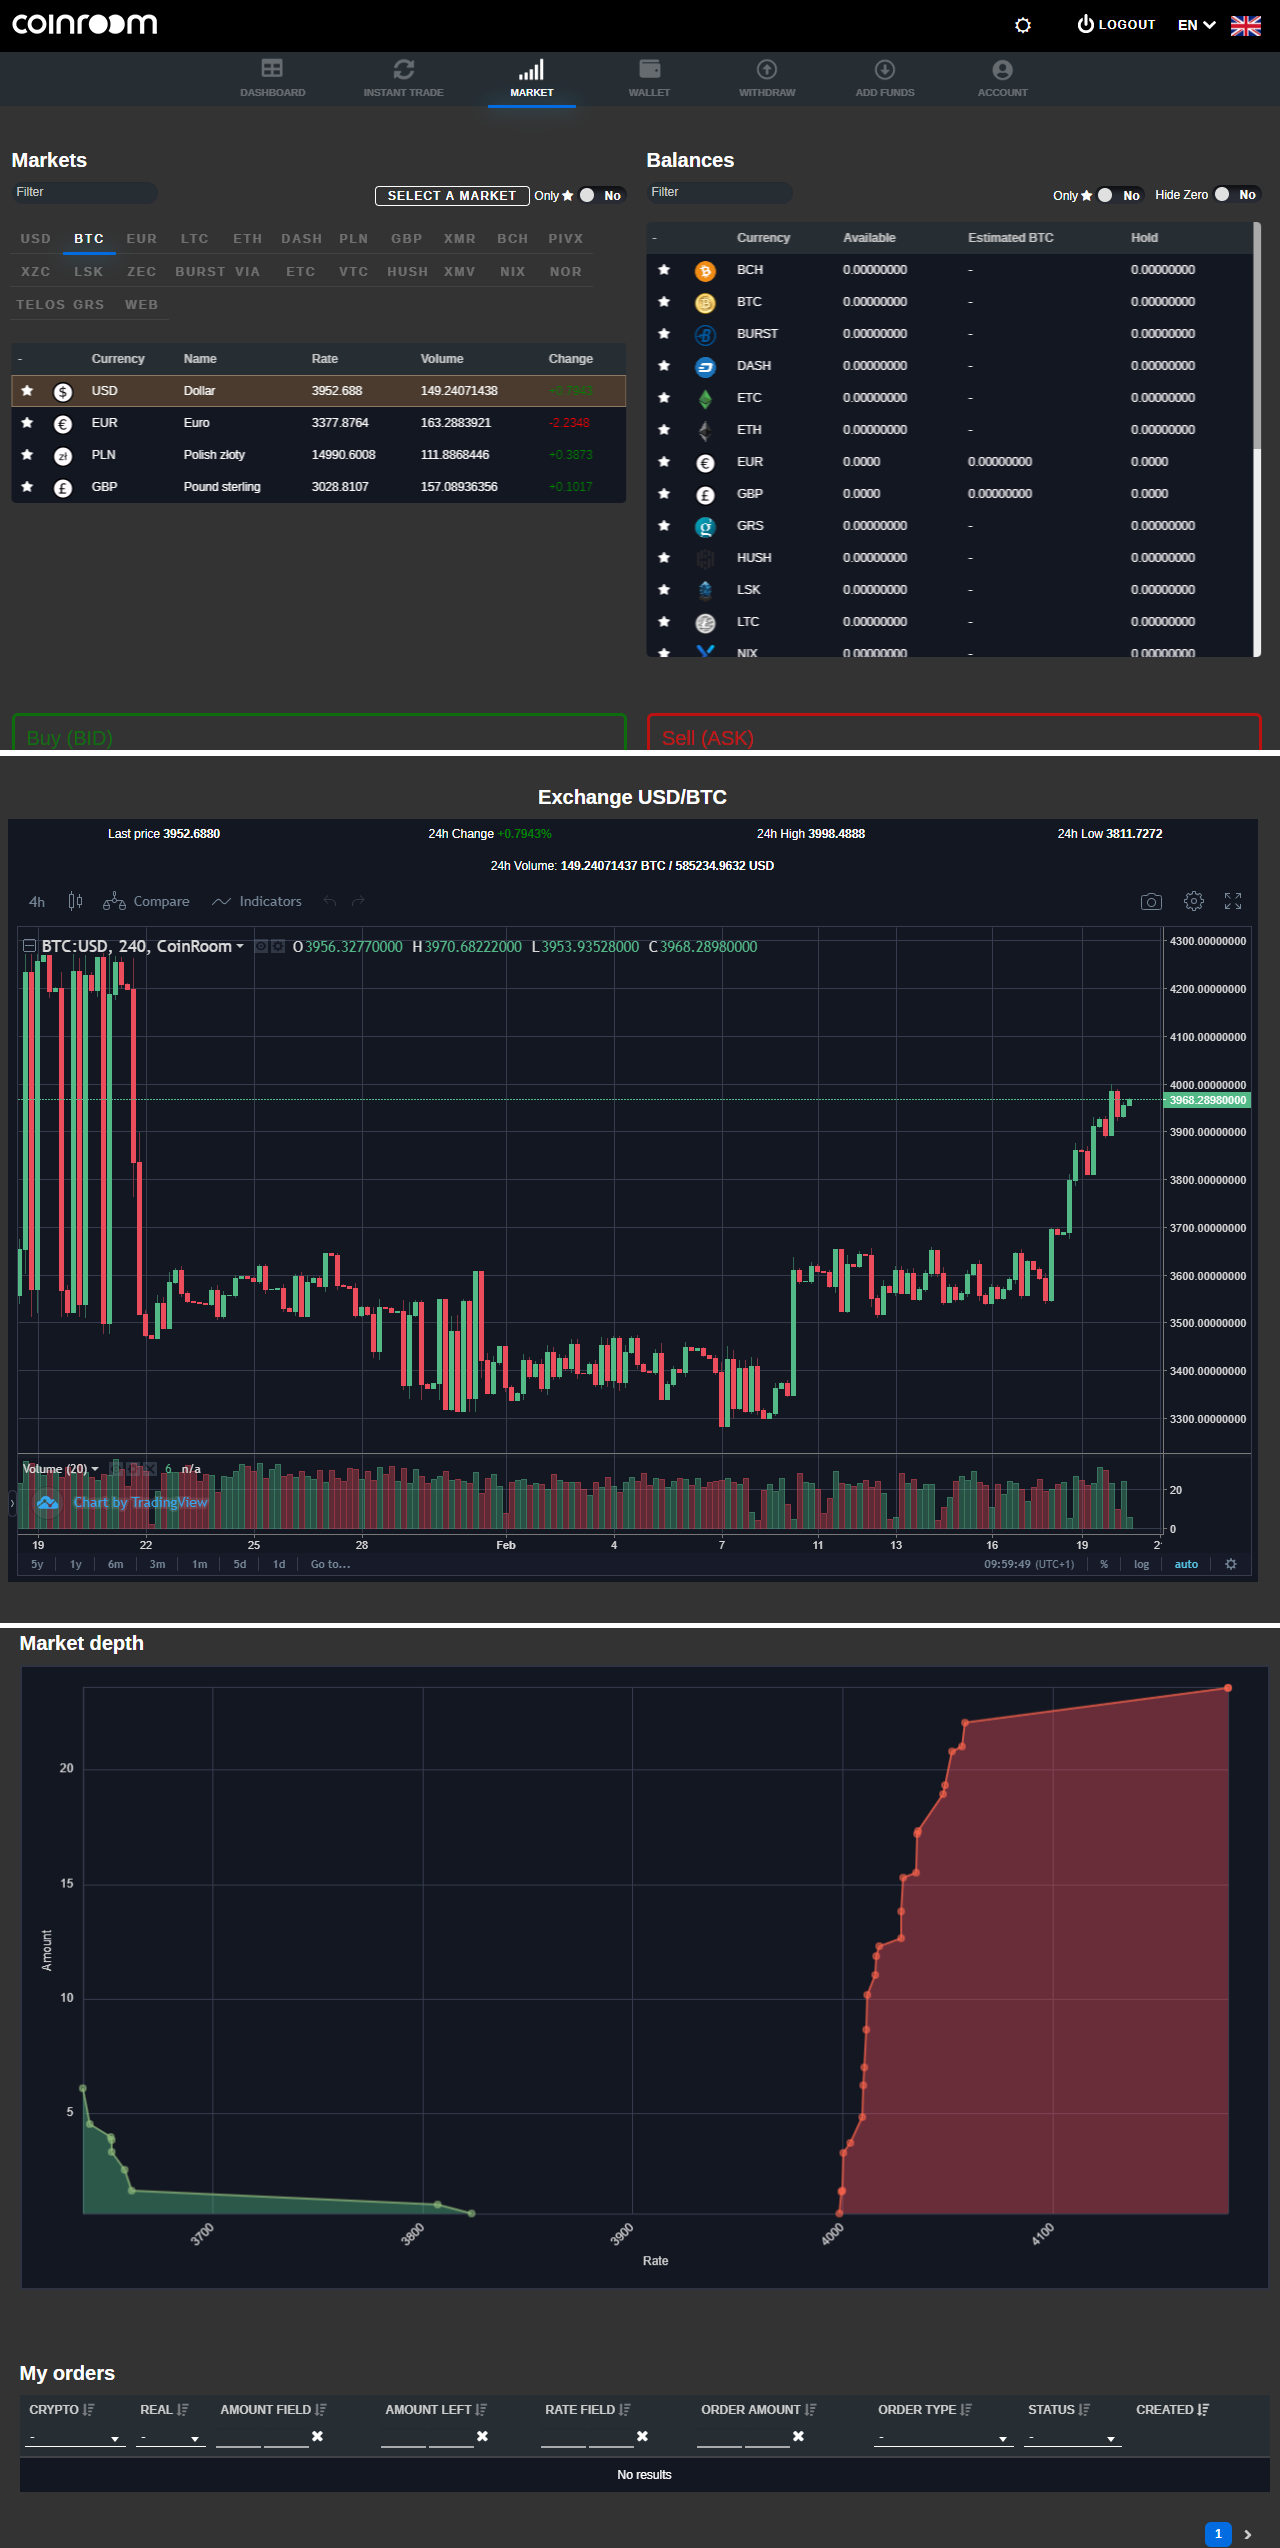 Coinroom Trading View